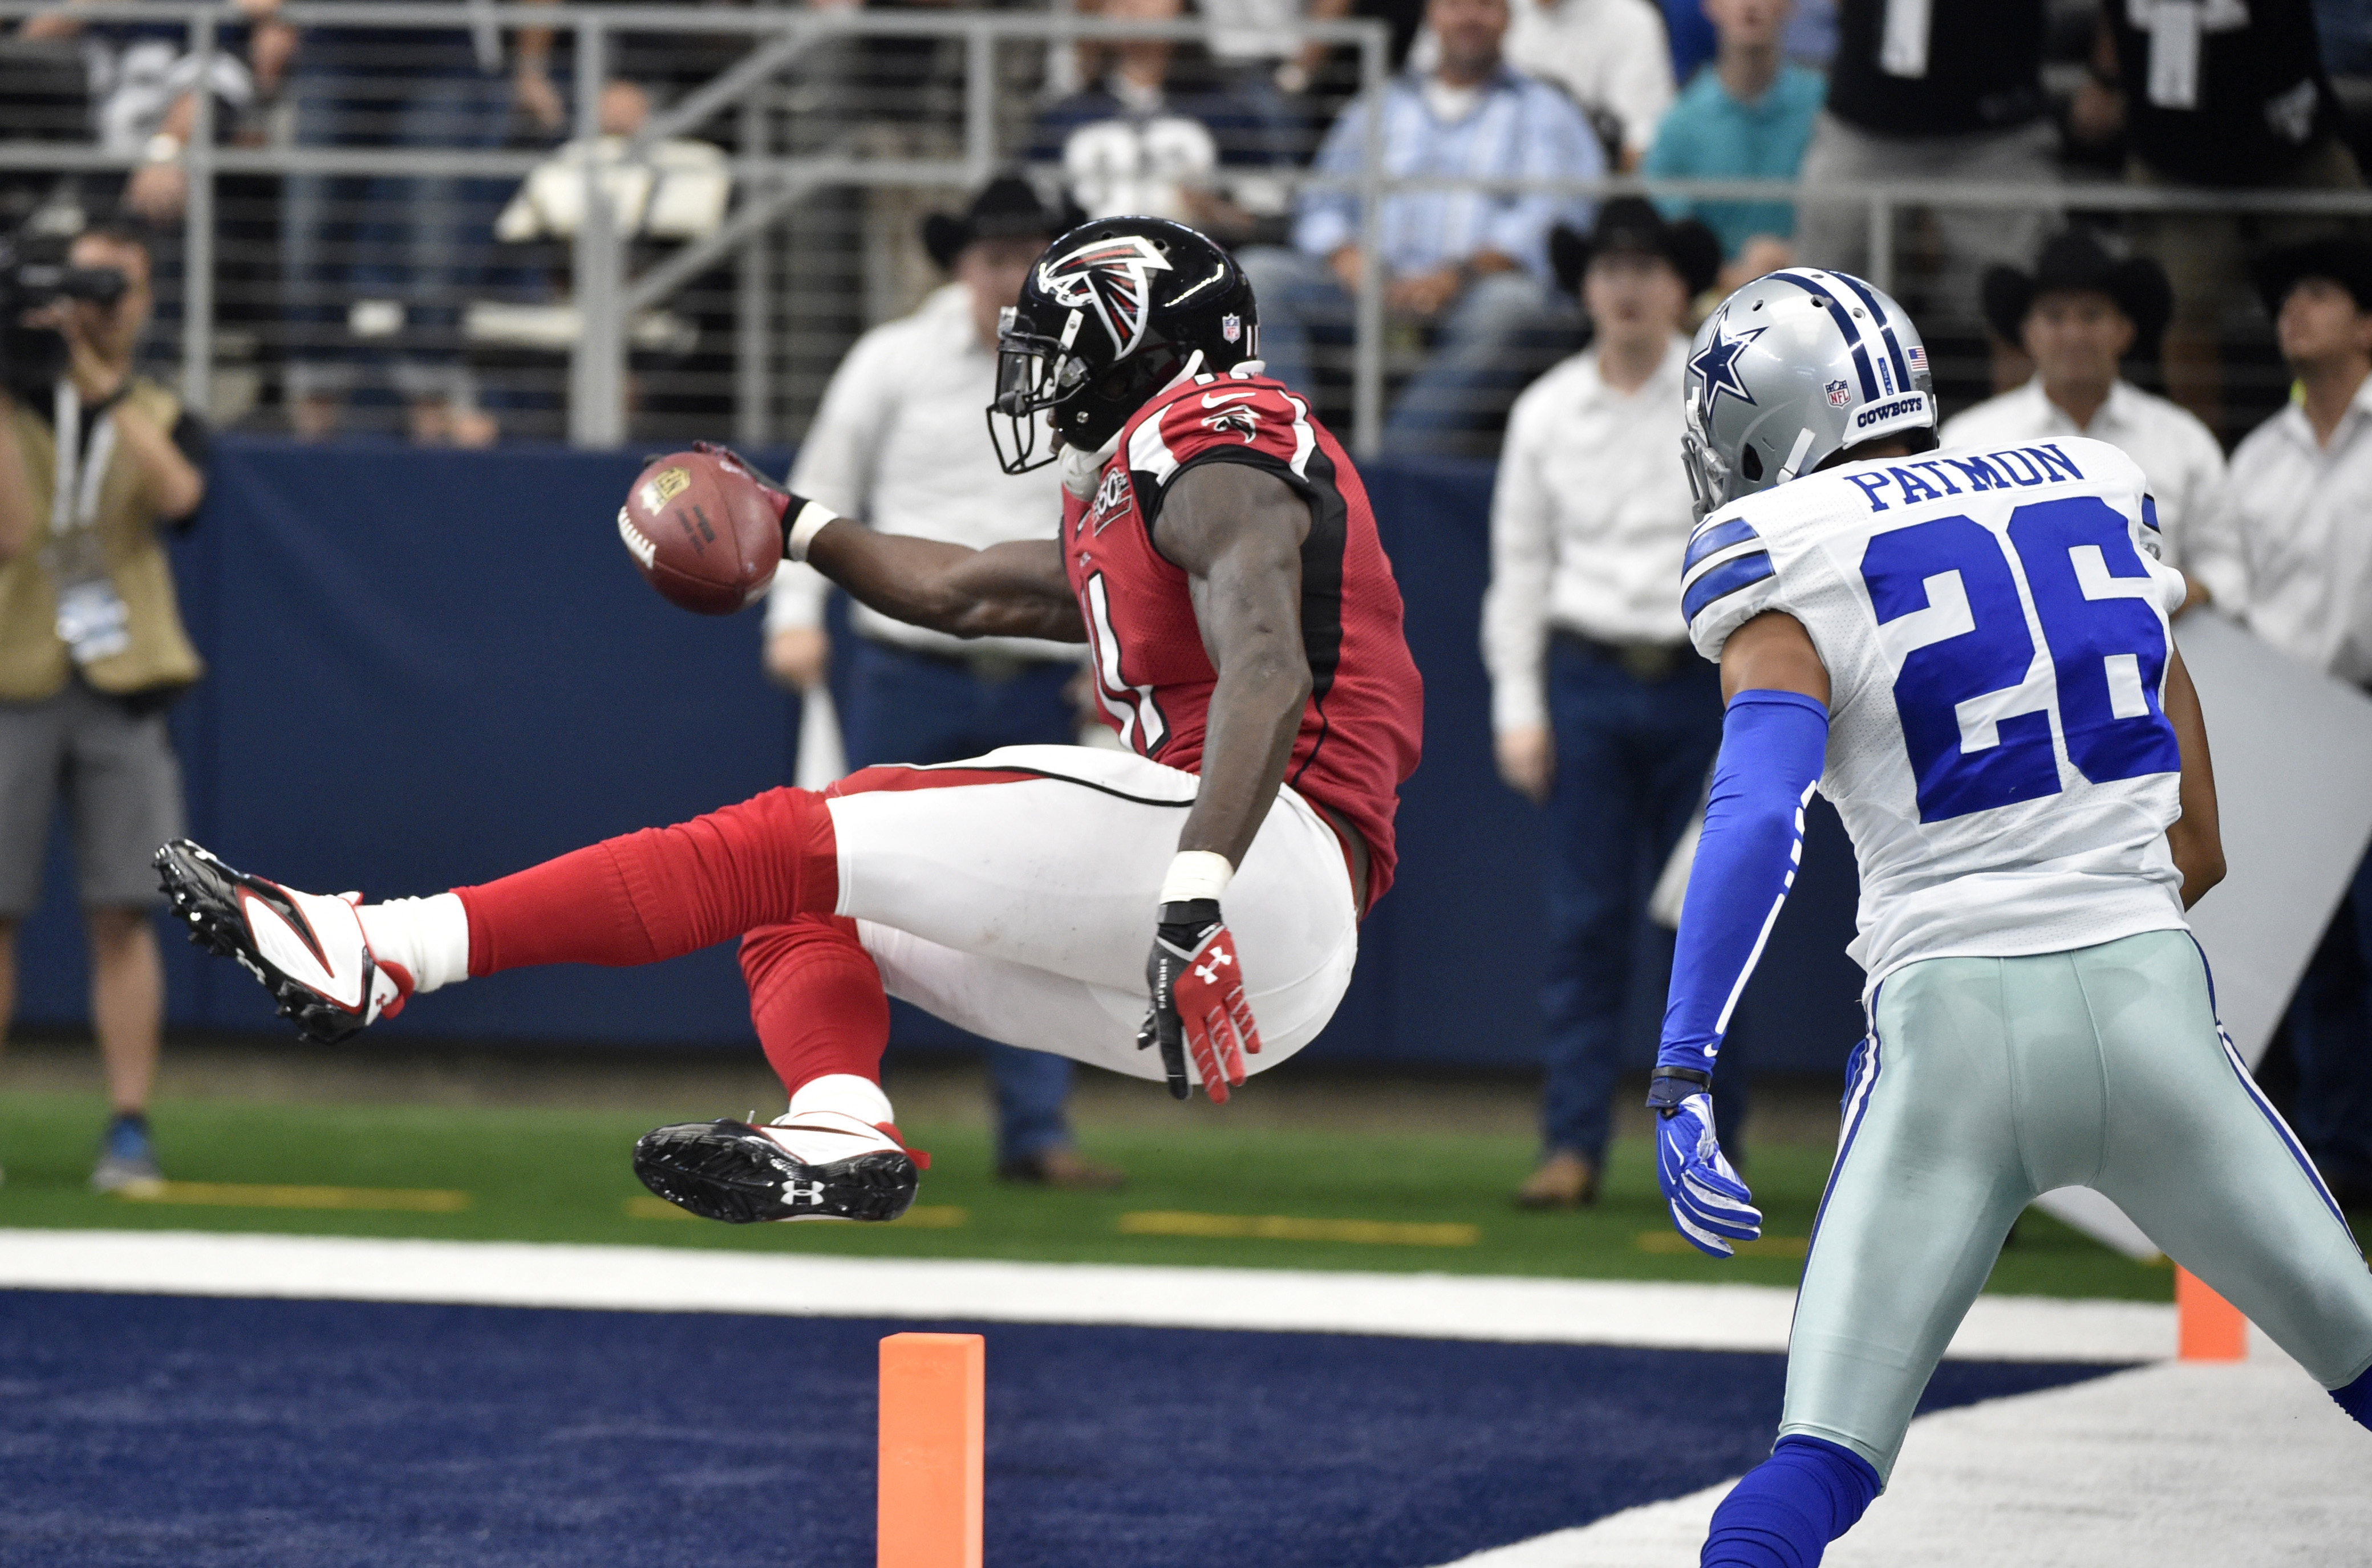 FILE - IN this Sept. 27, 2015 file photo, Atlanta Falcons wide receiver Julio Jones (11) sails into the end zone for a touchdown as Dallas Cowboys defensive back Tyler Patmon (26) watches in the second half of an NFL football game  in Arlington, Texas.  C